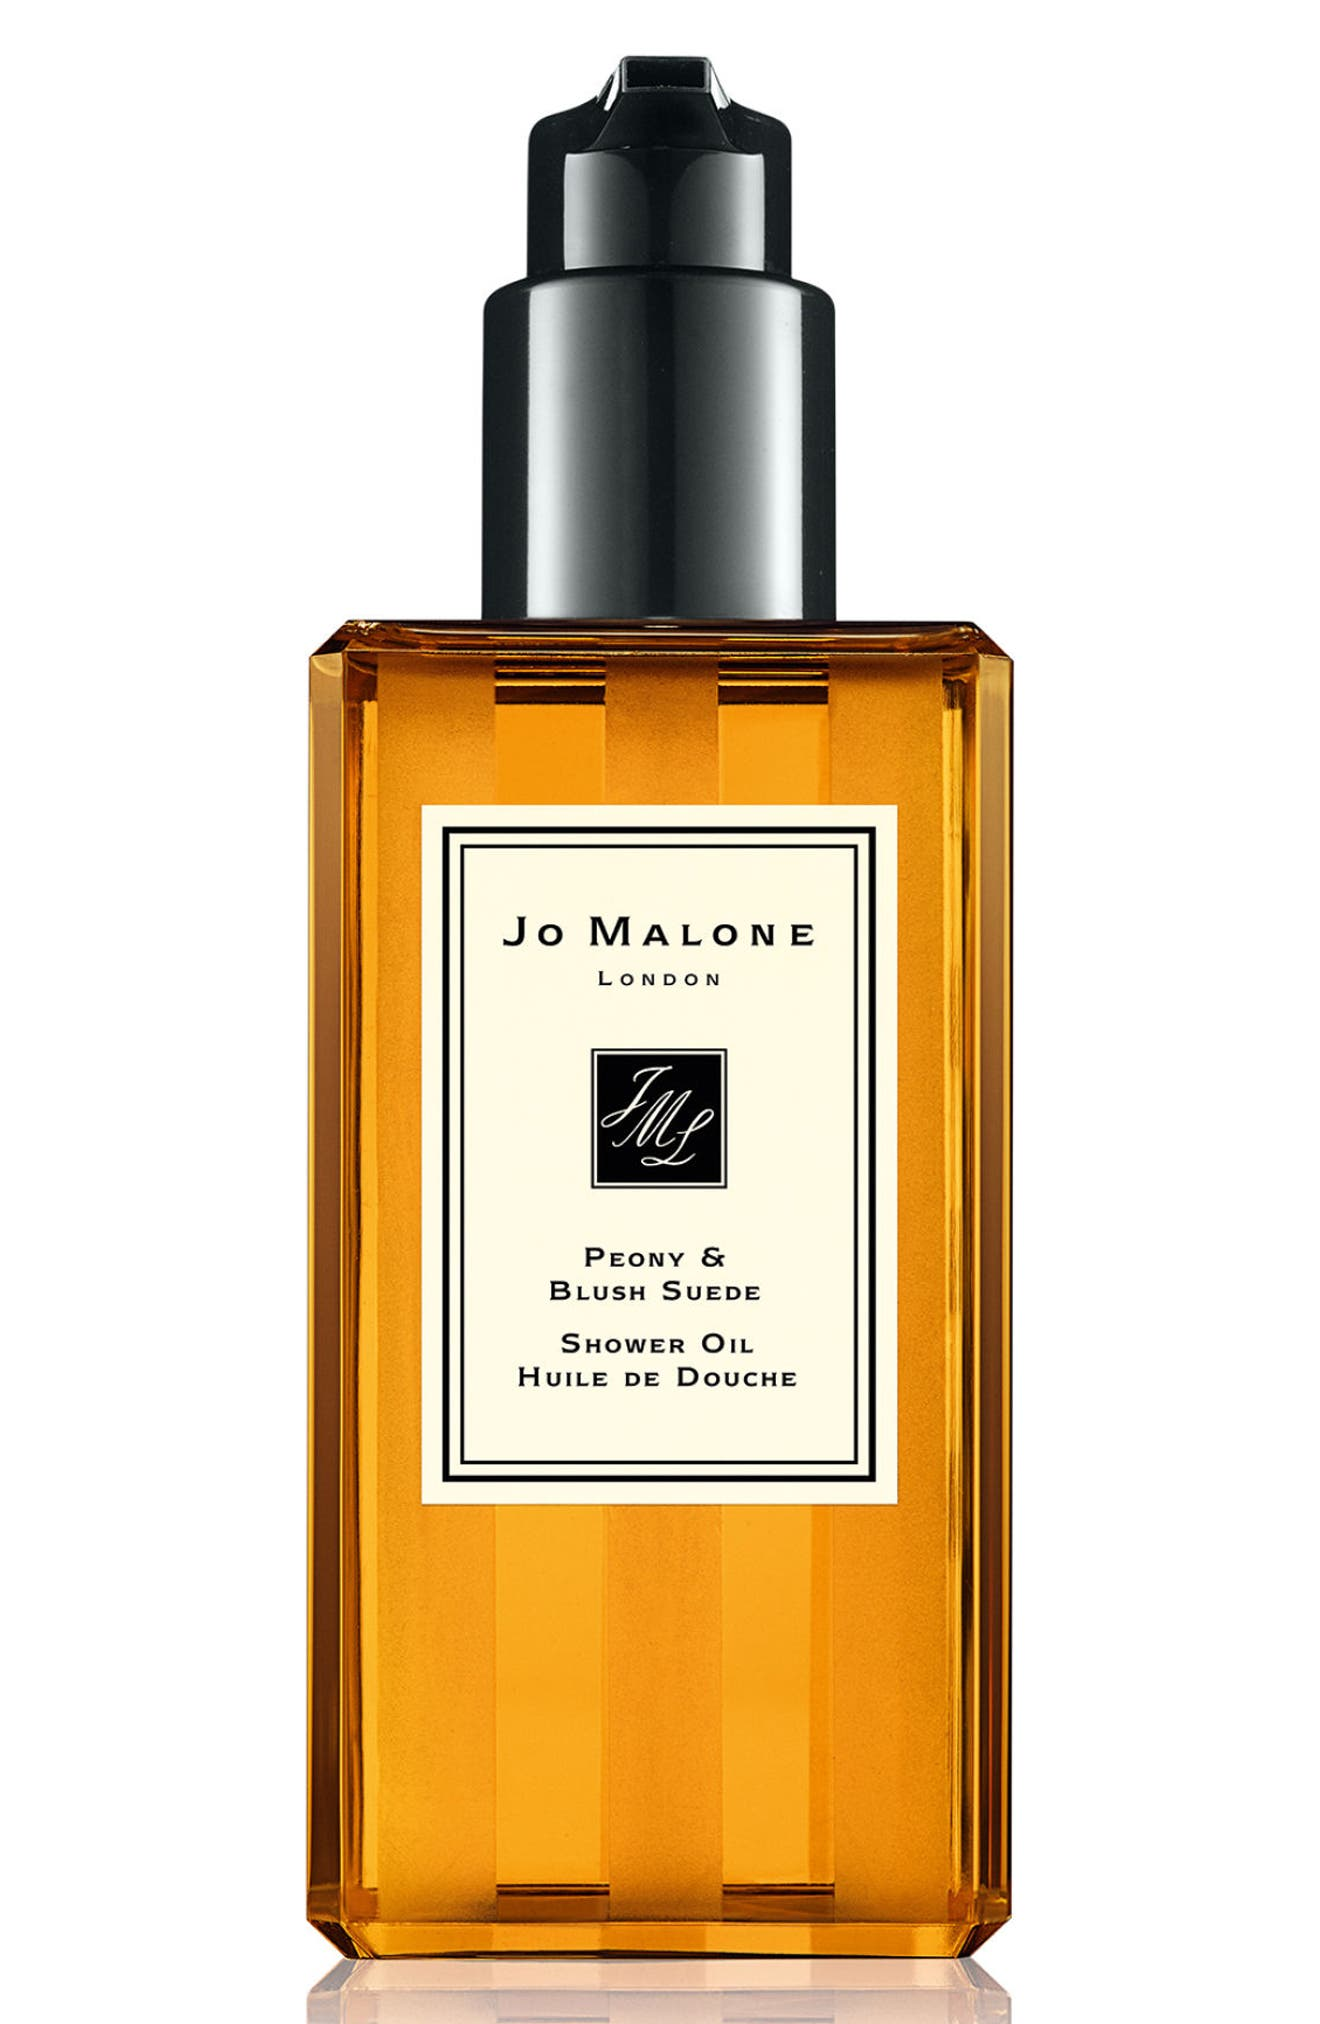 Jo Malone™ Peony & Blush Suede Shower Oil